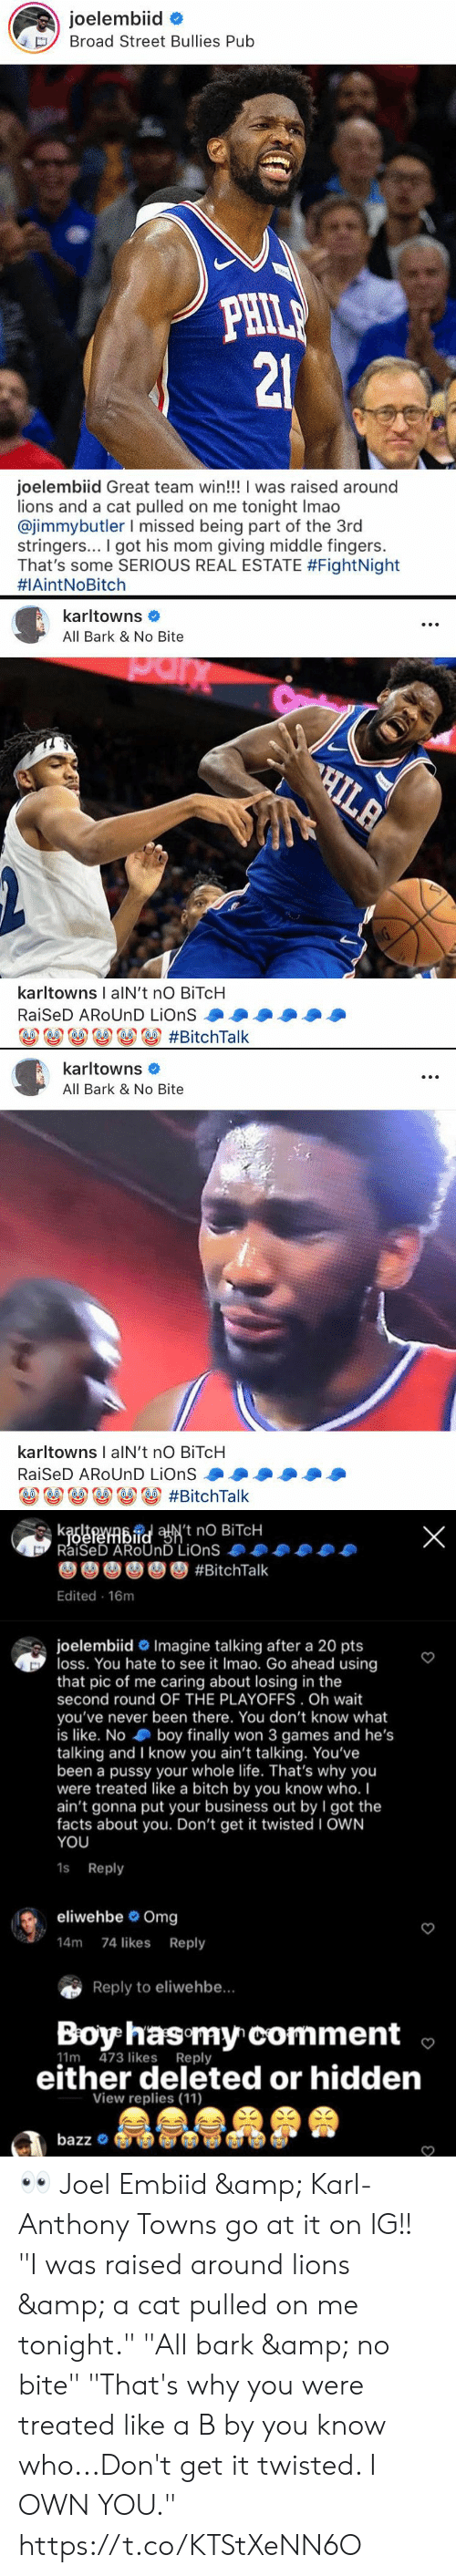 """Facts, Life, and Memes: joelembiid  Broad Street Bullies Pub  PHILE  21  joelembiid Great team win!!! I was raised around  lions and a cat pulled on me tonight Imao  @jimmybutler I missed being part of the 3rd  stringers... I got his mom giving middle fingers.  That's some SERIOUS REAL ESTATE #FightNight  #1AintNoBitch   karltowns  All Bark & No Bite  C  HILA  AG  karltowns I alN't no BITCH  RaiSeD AROUND LiOnS  #BitchTalk   karltowns  All Bark & No Bite  karltowns I alN't nO BiTcH  RaiSeD AROUND LiOnS  o#BitchTalk   kaefenbidaN't nO BITCH  RaiSeD AROUND LiOnS  X  #BitchTalk  Edited 16m  joelembiid Imagine talking after a 20 pts  loss. You hate to see it Imao. Go ahead using  that pic of me caring about losing in the  second round OF THE PLAYOFFS. Oh wait  you've never been there. You don't know what  is like. No boy finally won 3 games and he's  talking and I know you ain't talking. You've  been a pussy your whole life. That's why you  were treated like a bitch by you know who. I  ain't gonna put your business out by I got the  facts about you. Don't get it twisted I OWN  YOU  1s Reply  eliwehbe Omg  14m 74 likes Reply  Reply to eliwehbe...  Boy has my comment  11m 473 likes Reply  either deleted or hidden  View replies (11)  MASA  bazz 👀  Joel Embiid & Karl-Anthony Towns go at it on IG!!  """"I was raised around lions & a cat pulled on me tonight.""""  """"All bark & no bite""""  """"That's why you were treated like a B by you know who...Don't get it twisted. I OWN YOU."""" https://t.co/KTStXeNN6O"""